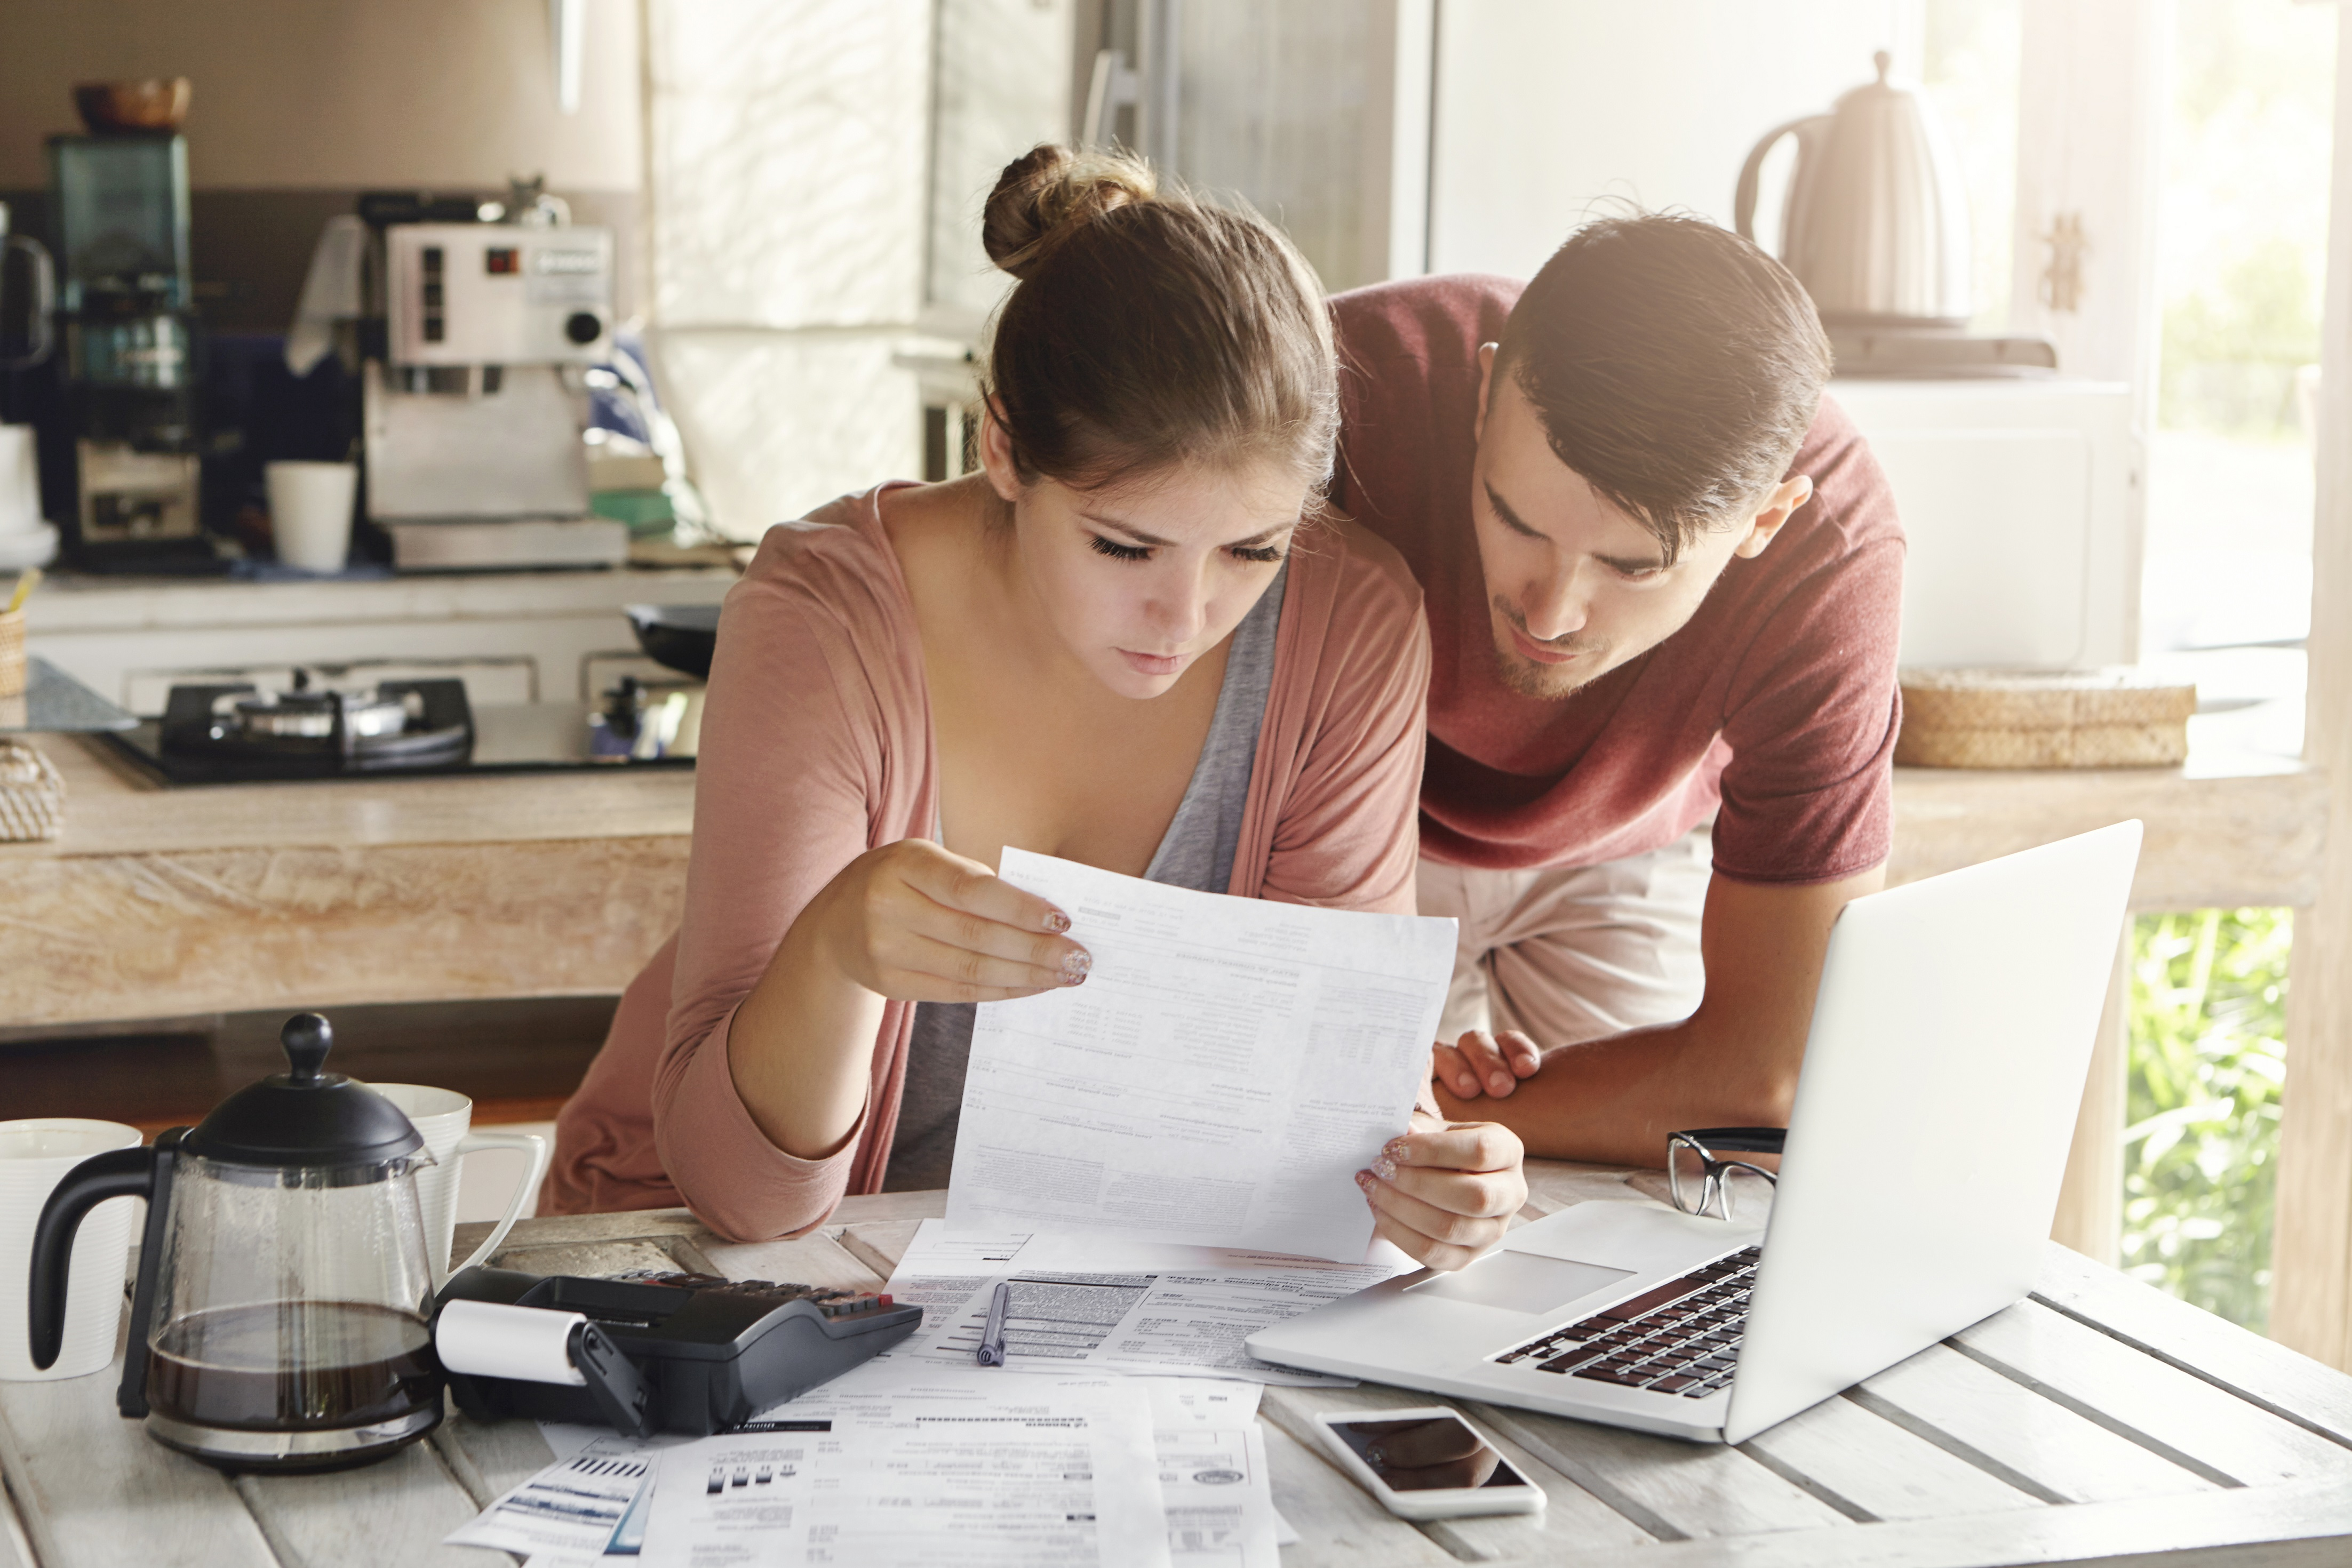 Millennial Home Buyers and the Problem of Student Loan Debt